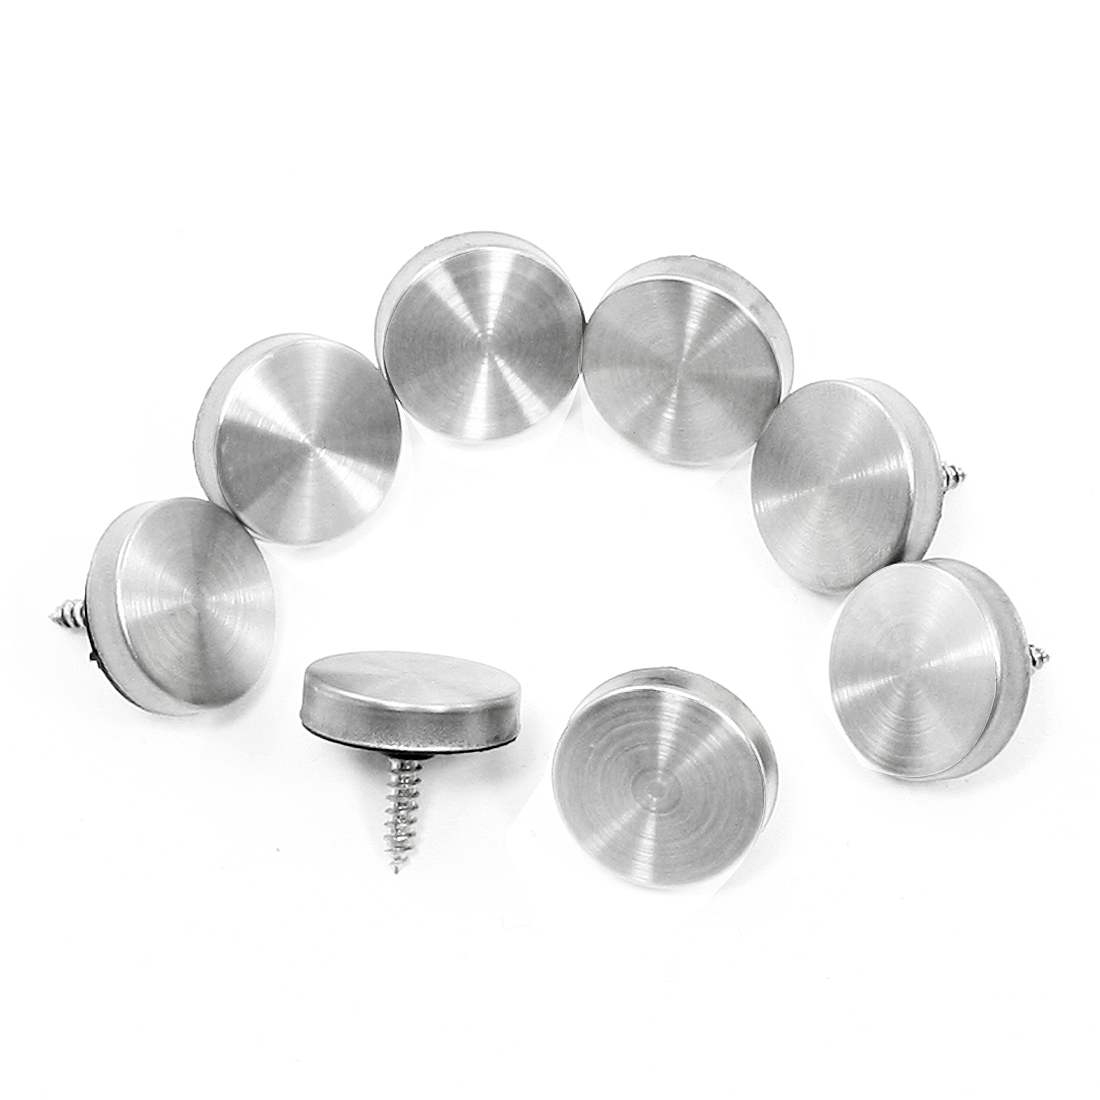 8 Pieces 22mm Stainless Steel Caps Decorative Mirror Nails